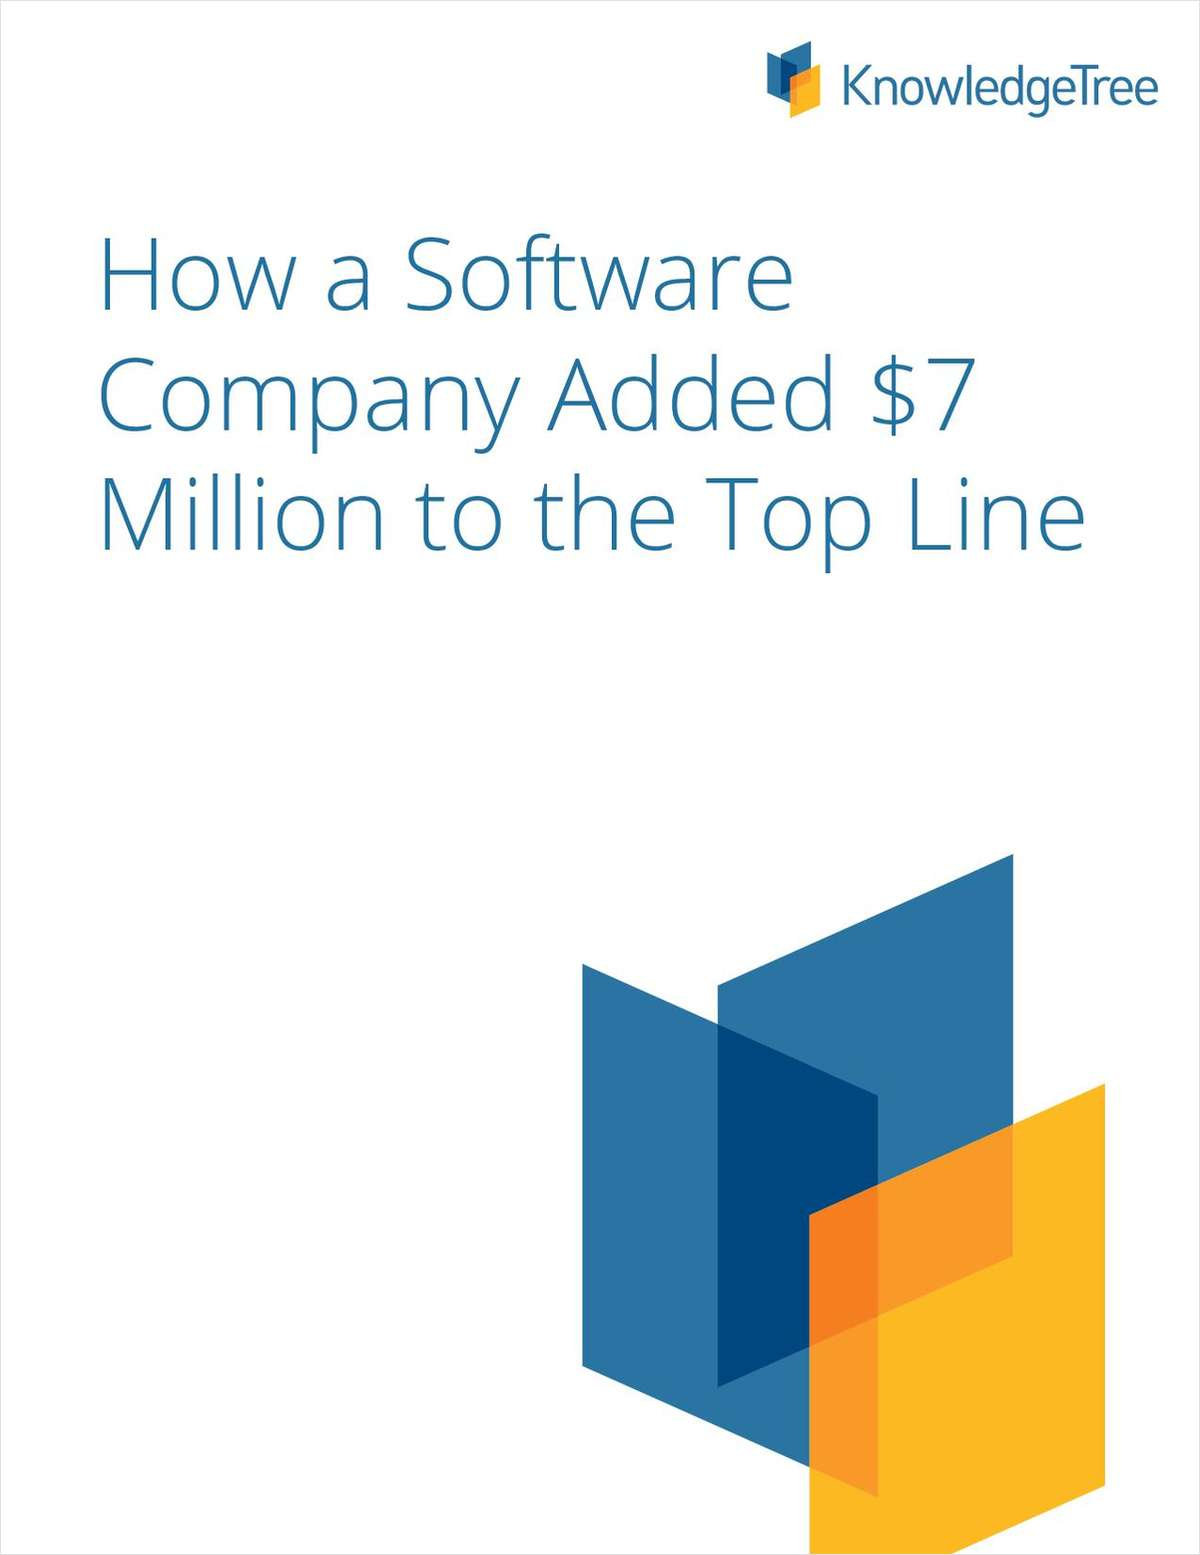 How a Software Company Added $7 Million to the Top Line